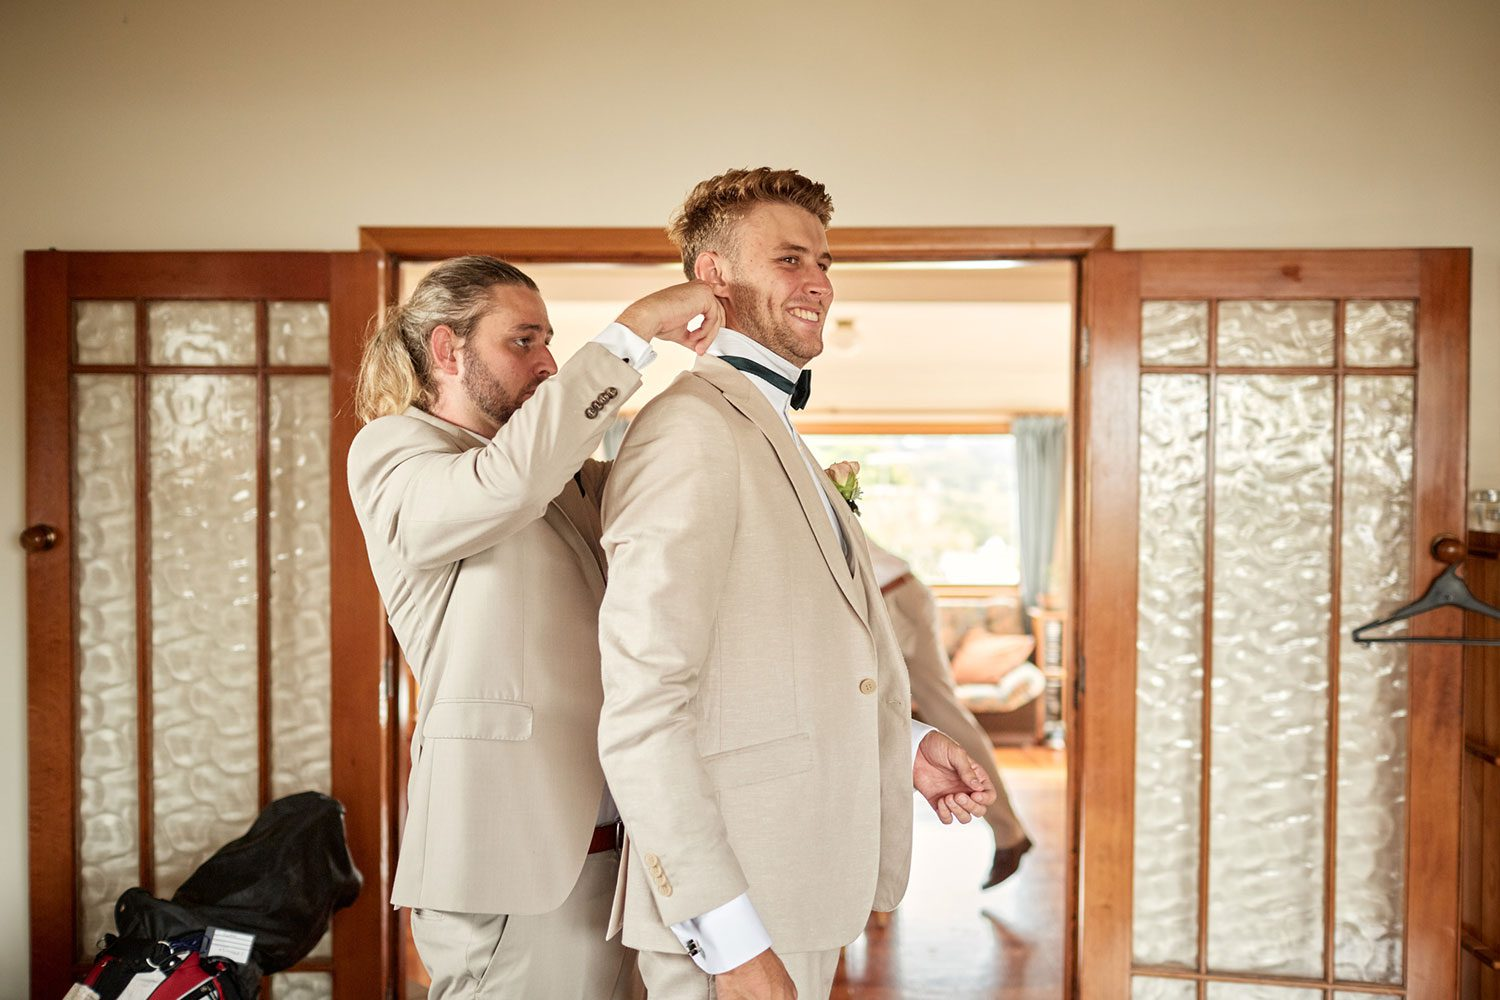 Emma and Marty - groom and groomsmen getting ready